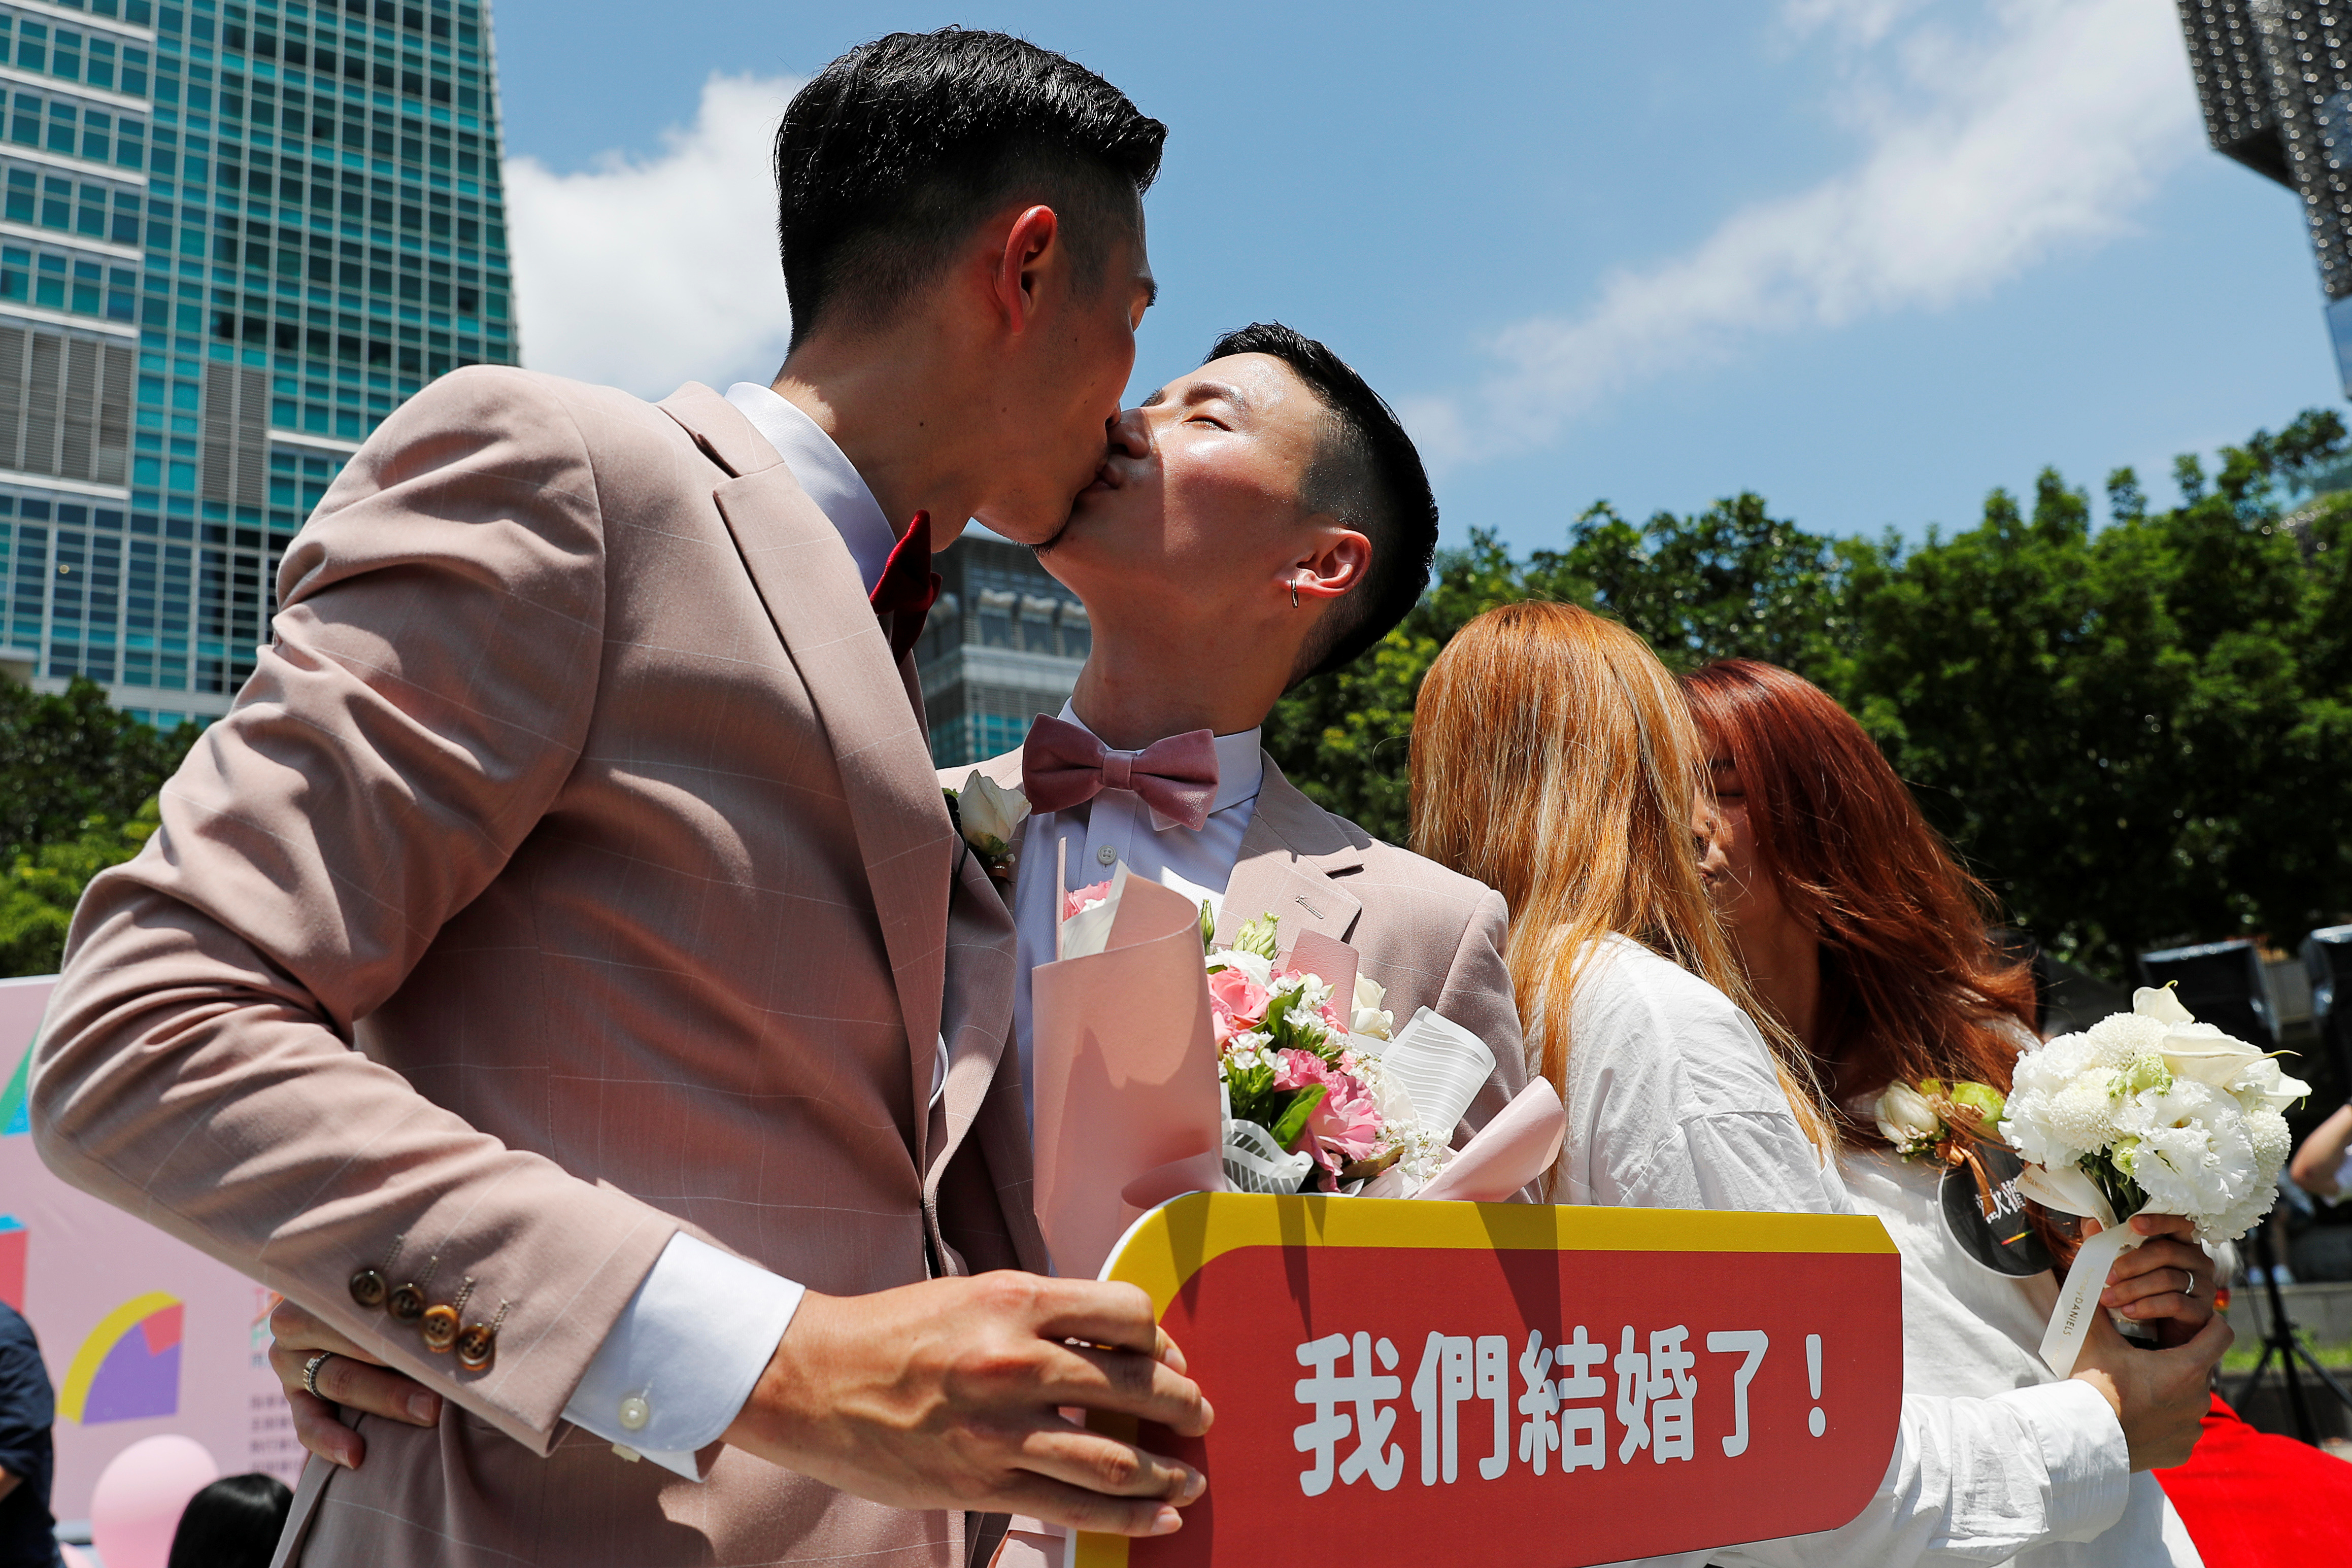 tgp-chubby-same-sex-marriage-in-japan-shows